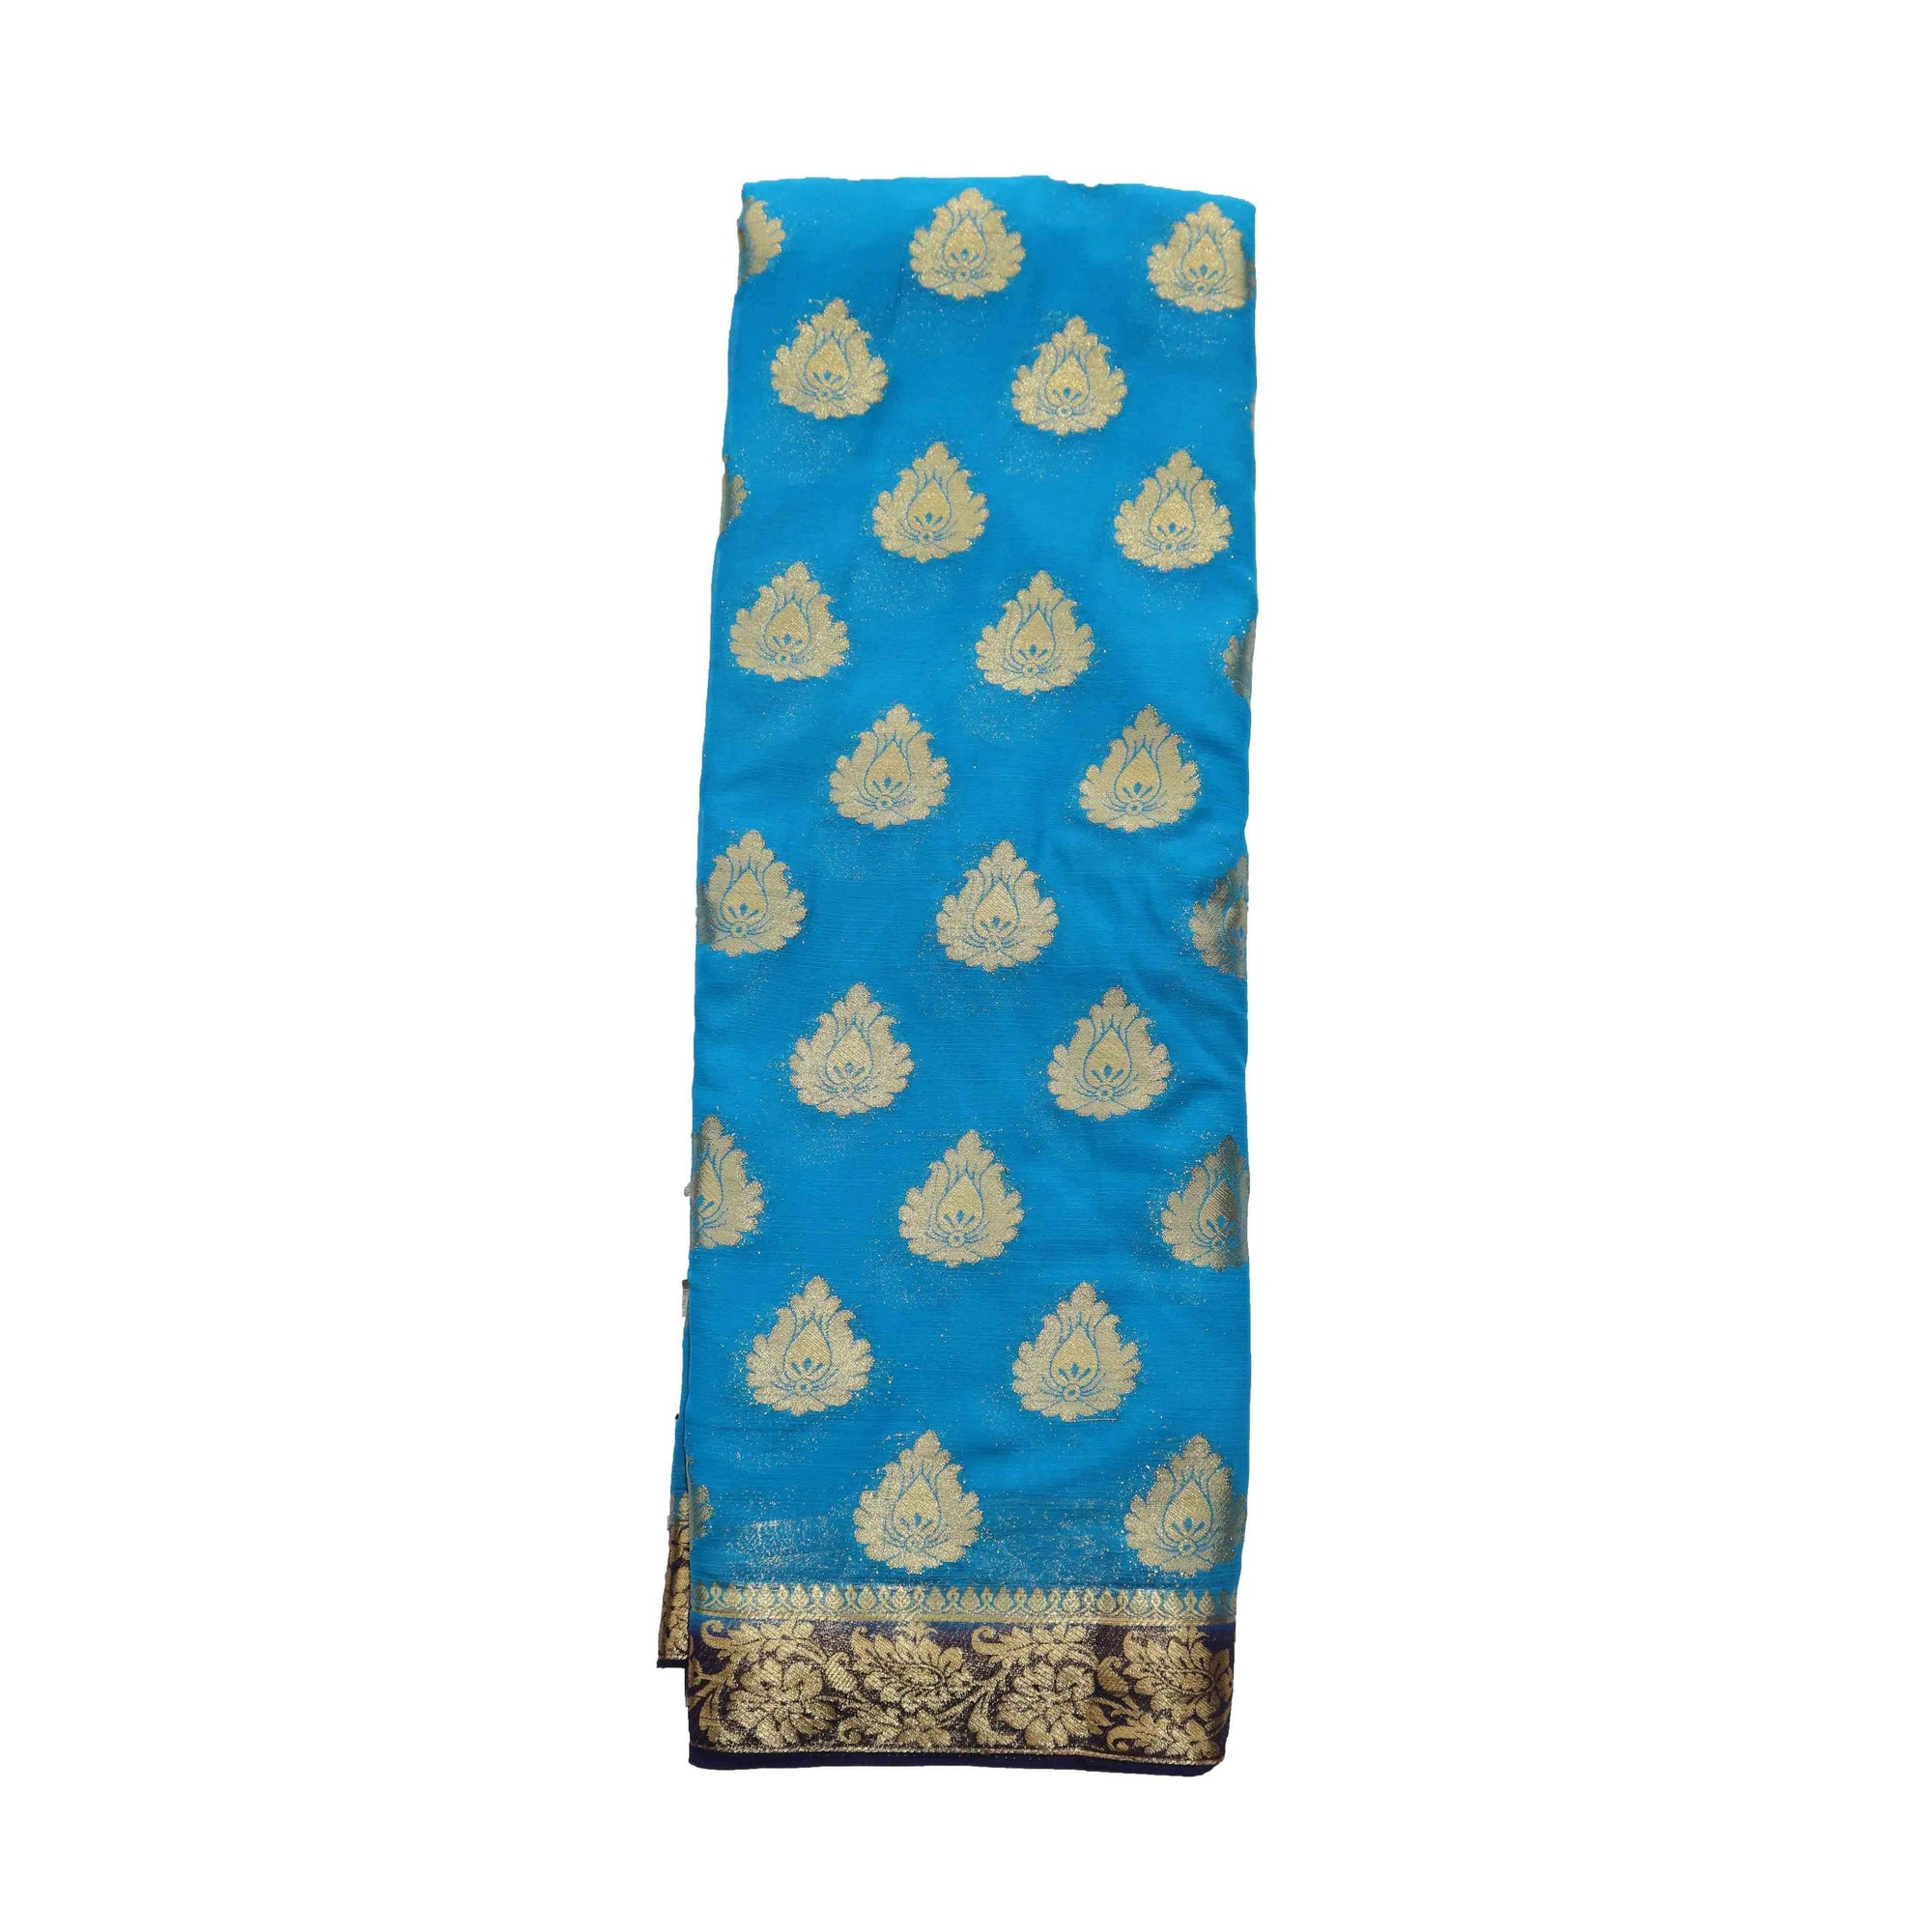 arars Women's kanchipuram kanjivaram pattu style mysore chiffon silk saree with blouse (401,blue)